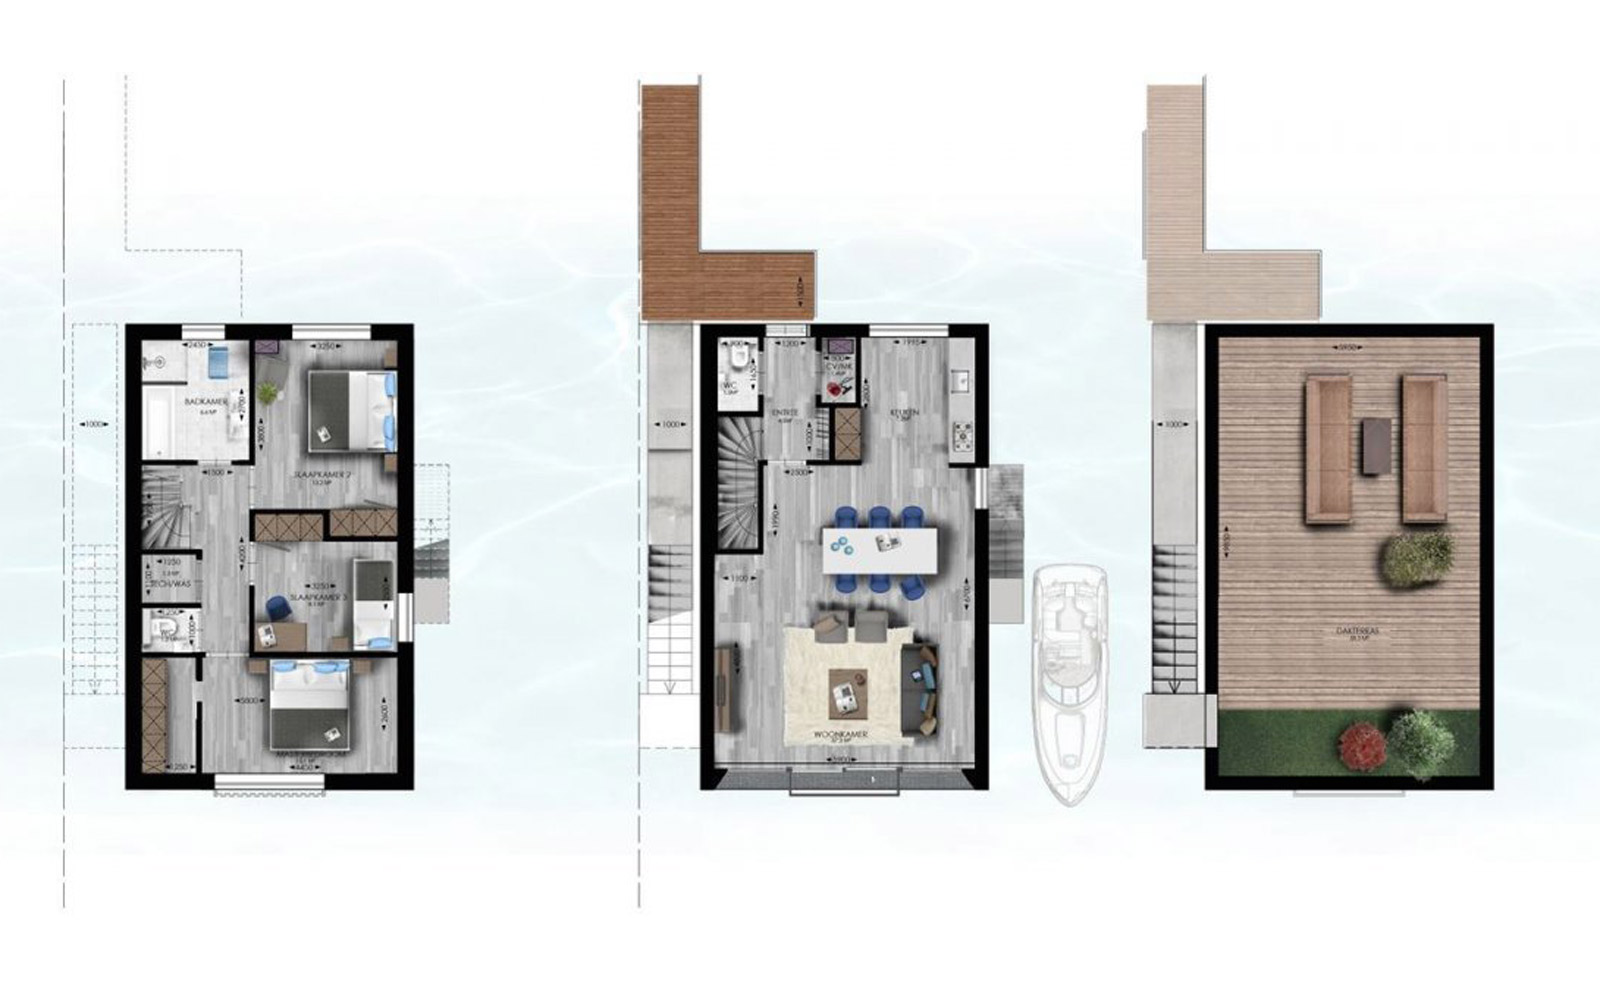 Waterstudio: Floating Villa Blueprint